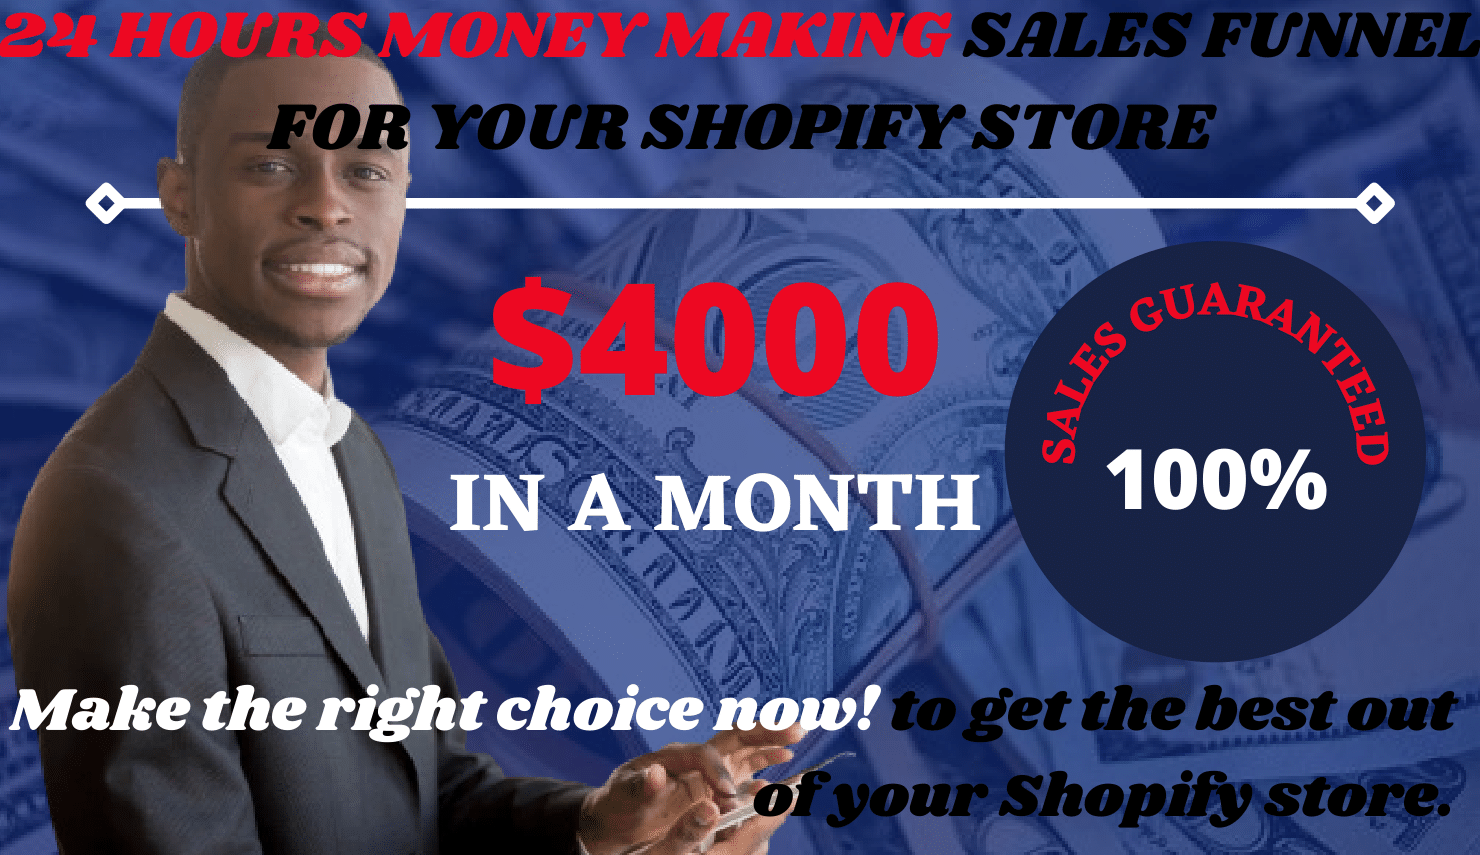 I will build clickfunnel sales funnel for shopify marketing sales funnel, FiverrBox